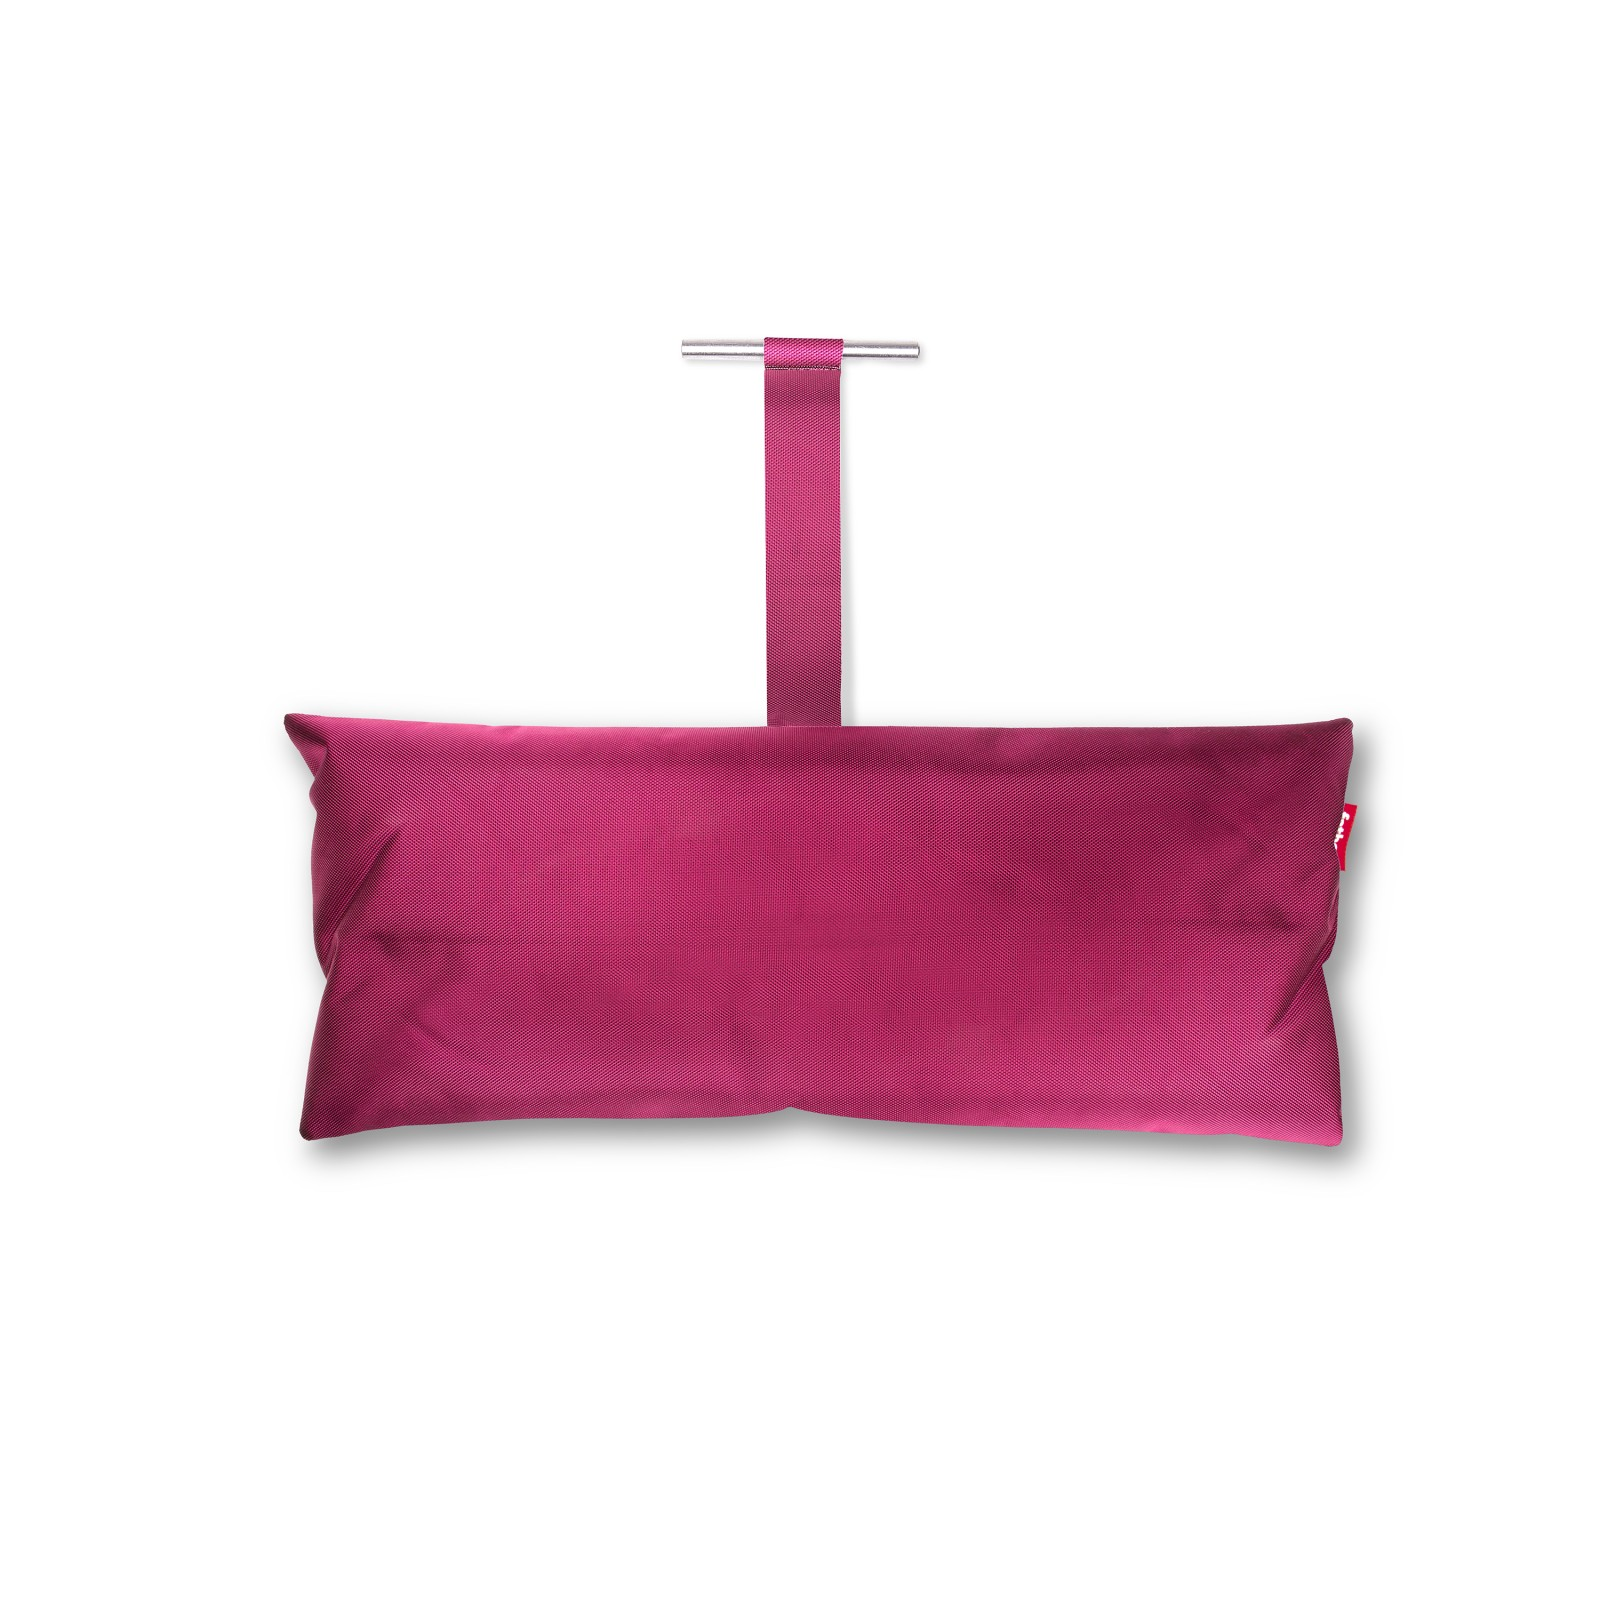 Headdemock Pillow Pink